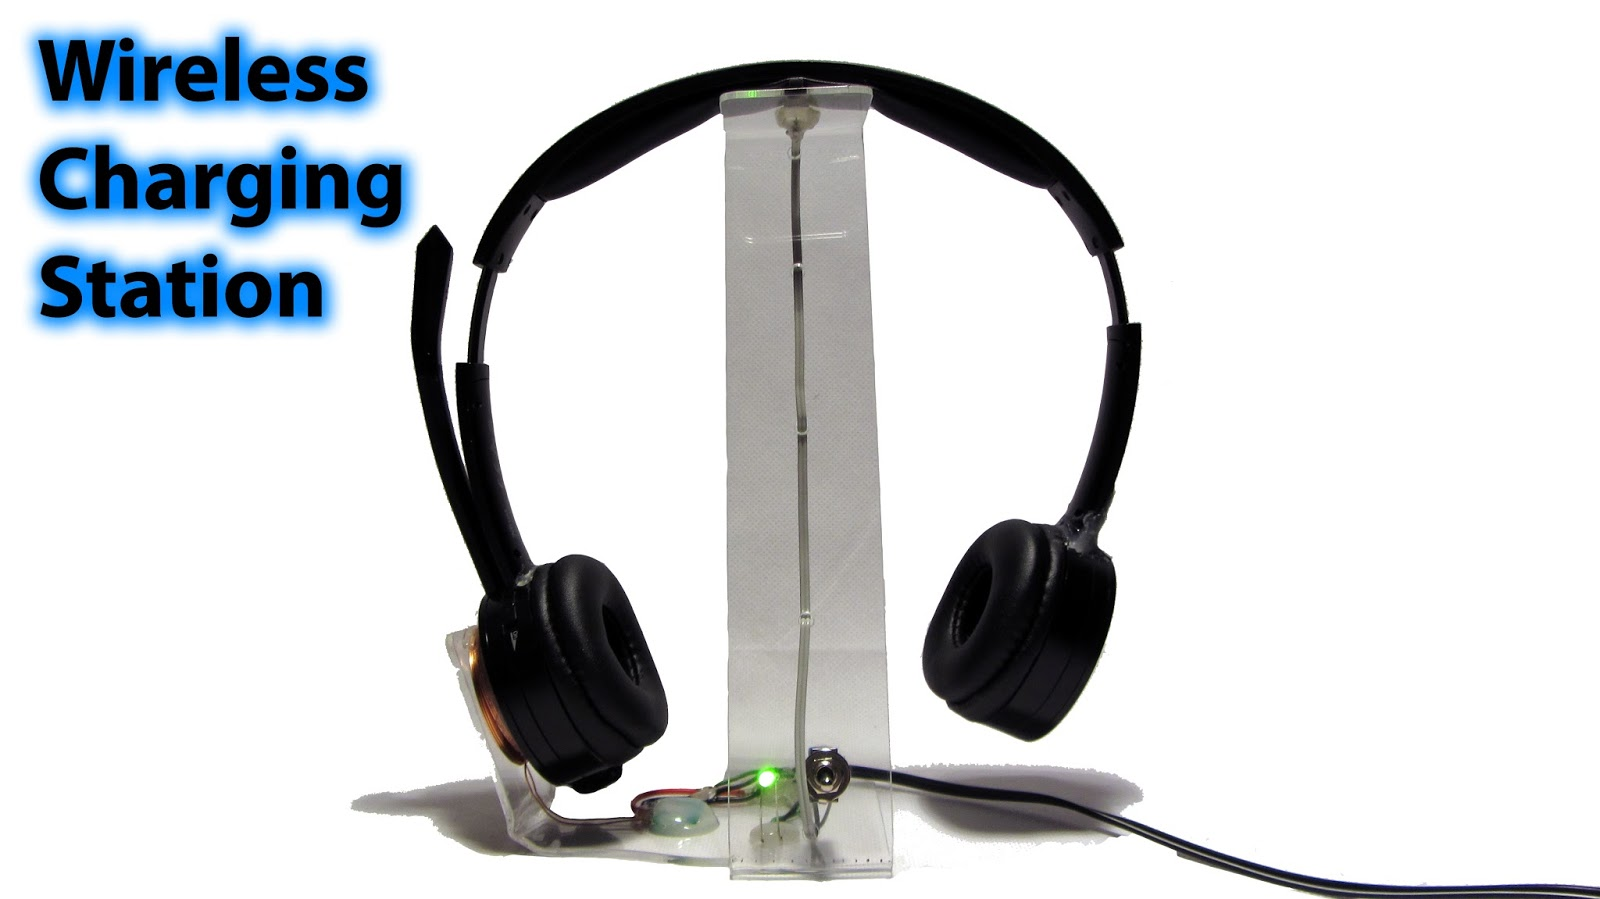 Do it yourself gadgets homemade wireless headphone charging station in this post i will show you how i enhanced my wireless headset from cable bound charging to wireless charging solutioingenieria Images